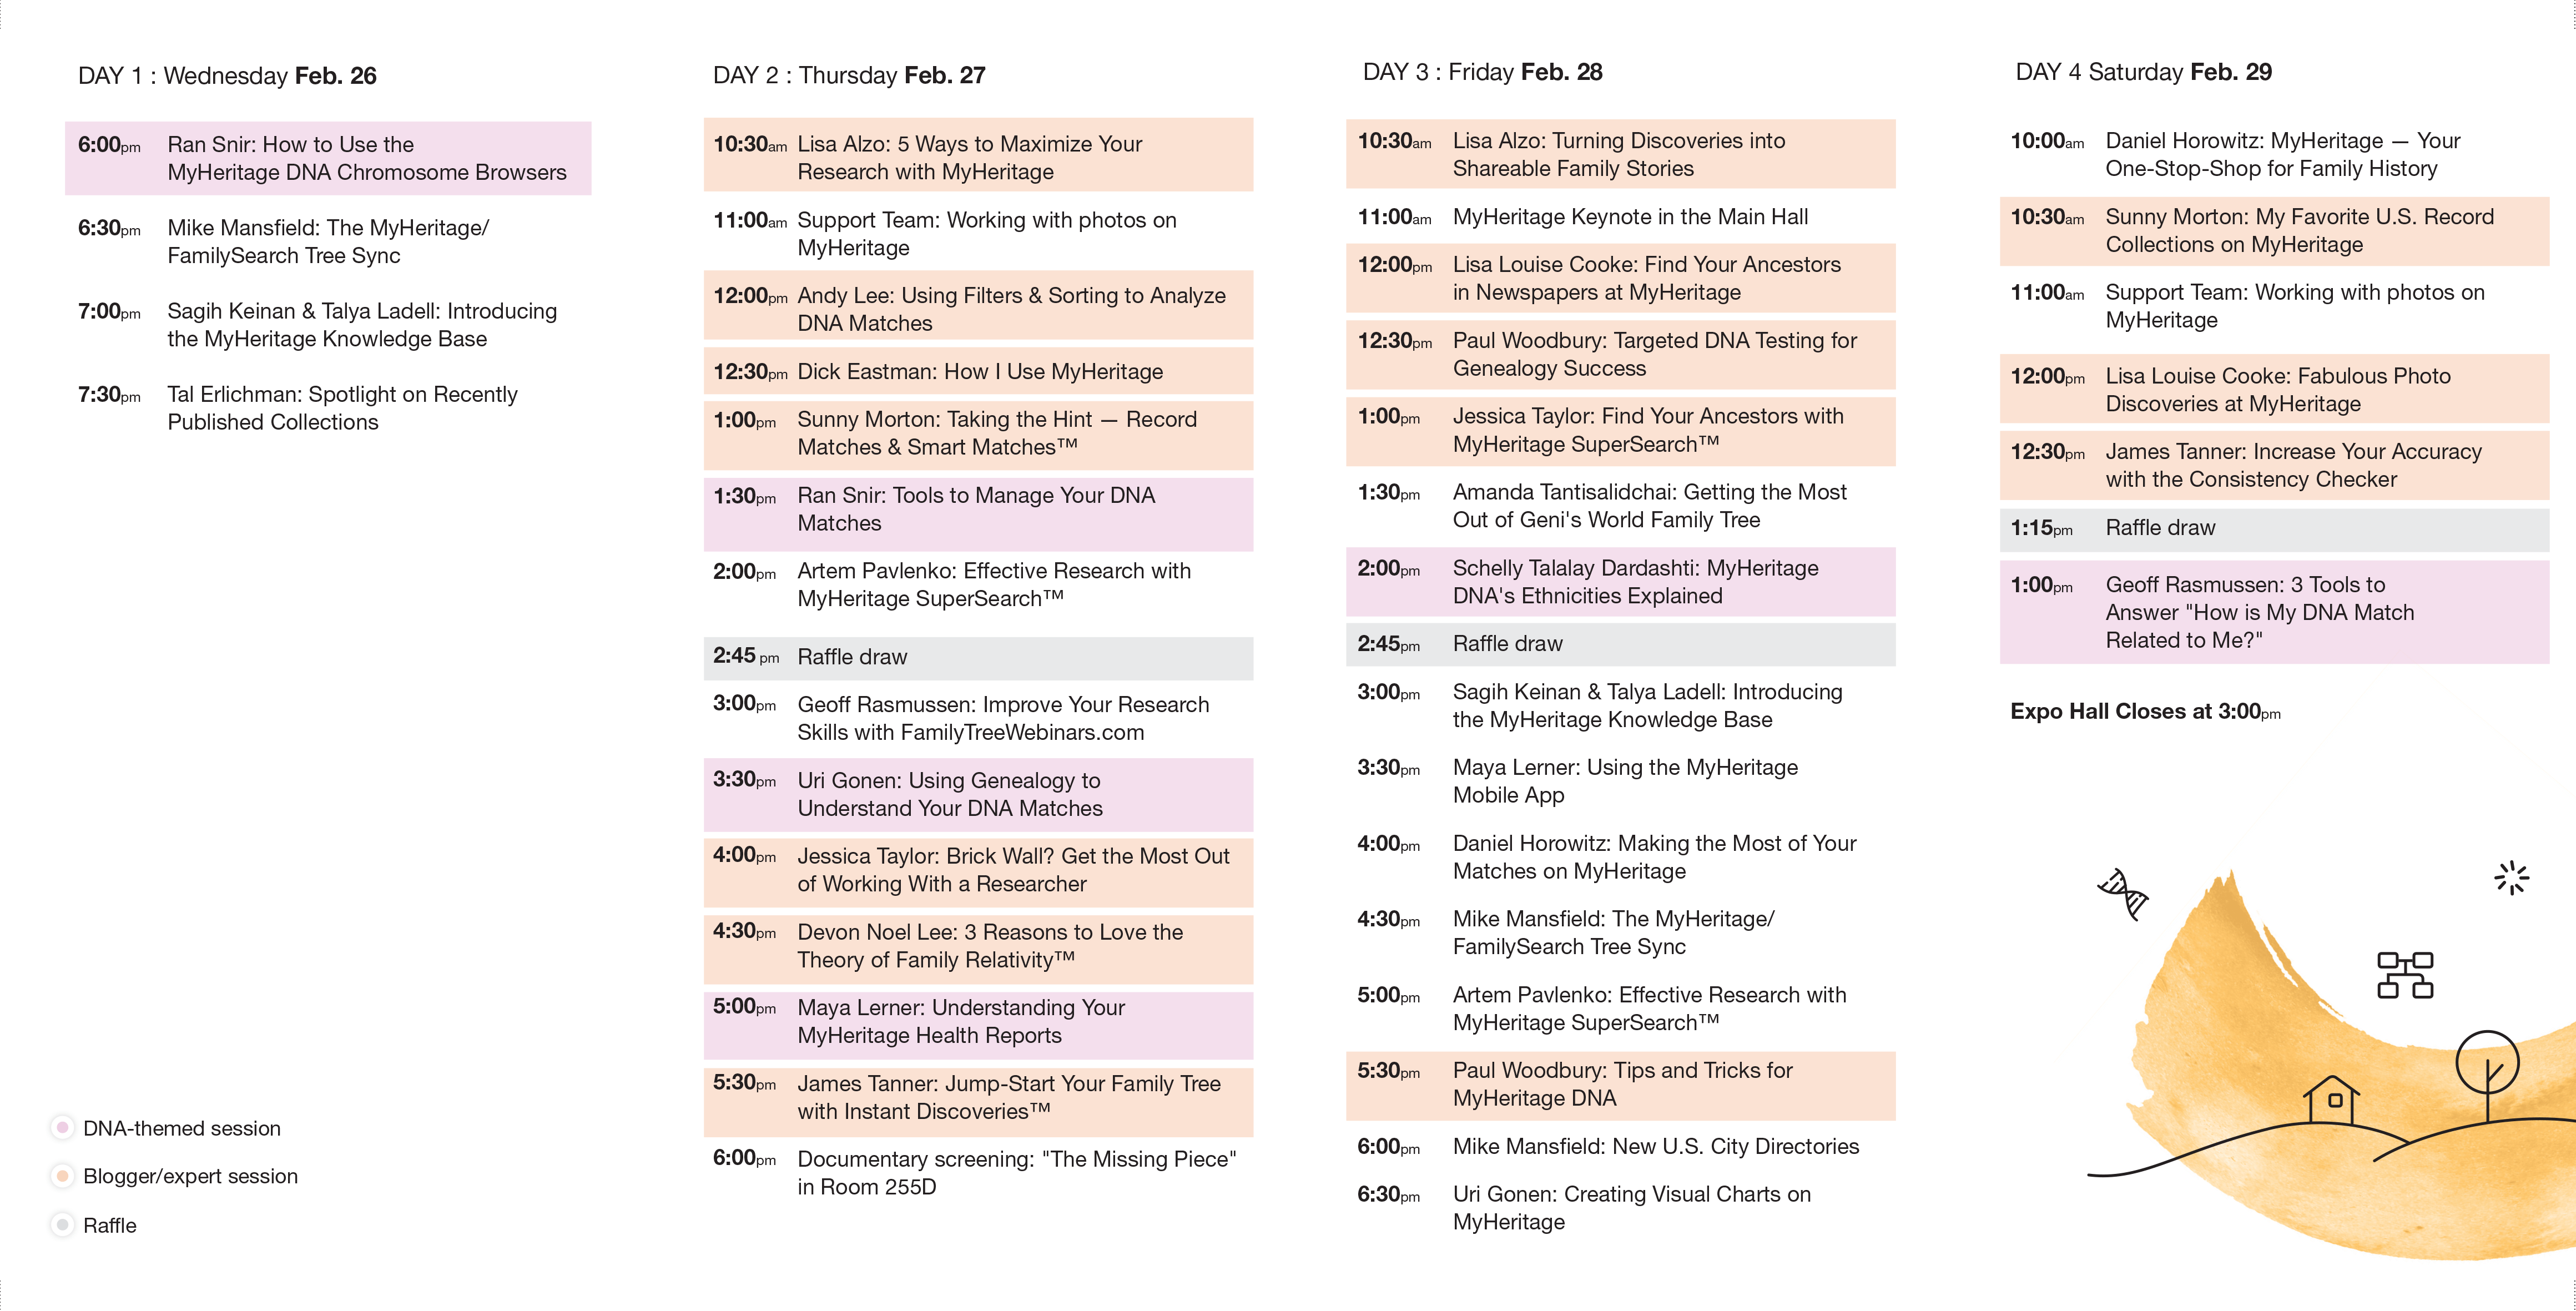 Full demo booth lecture schedule (click to zoom)